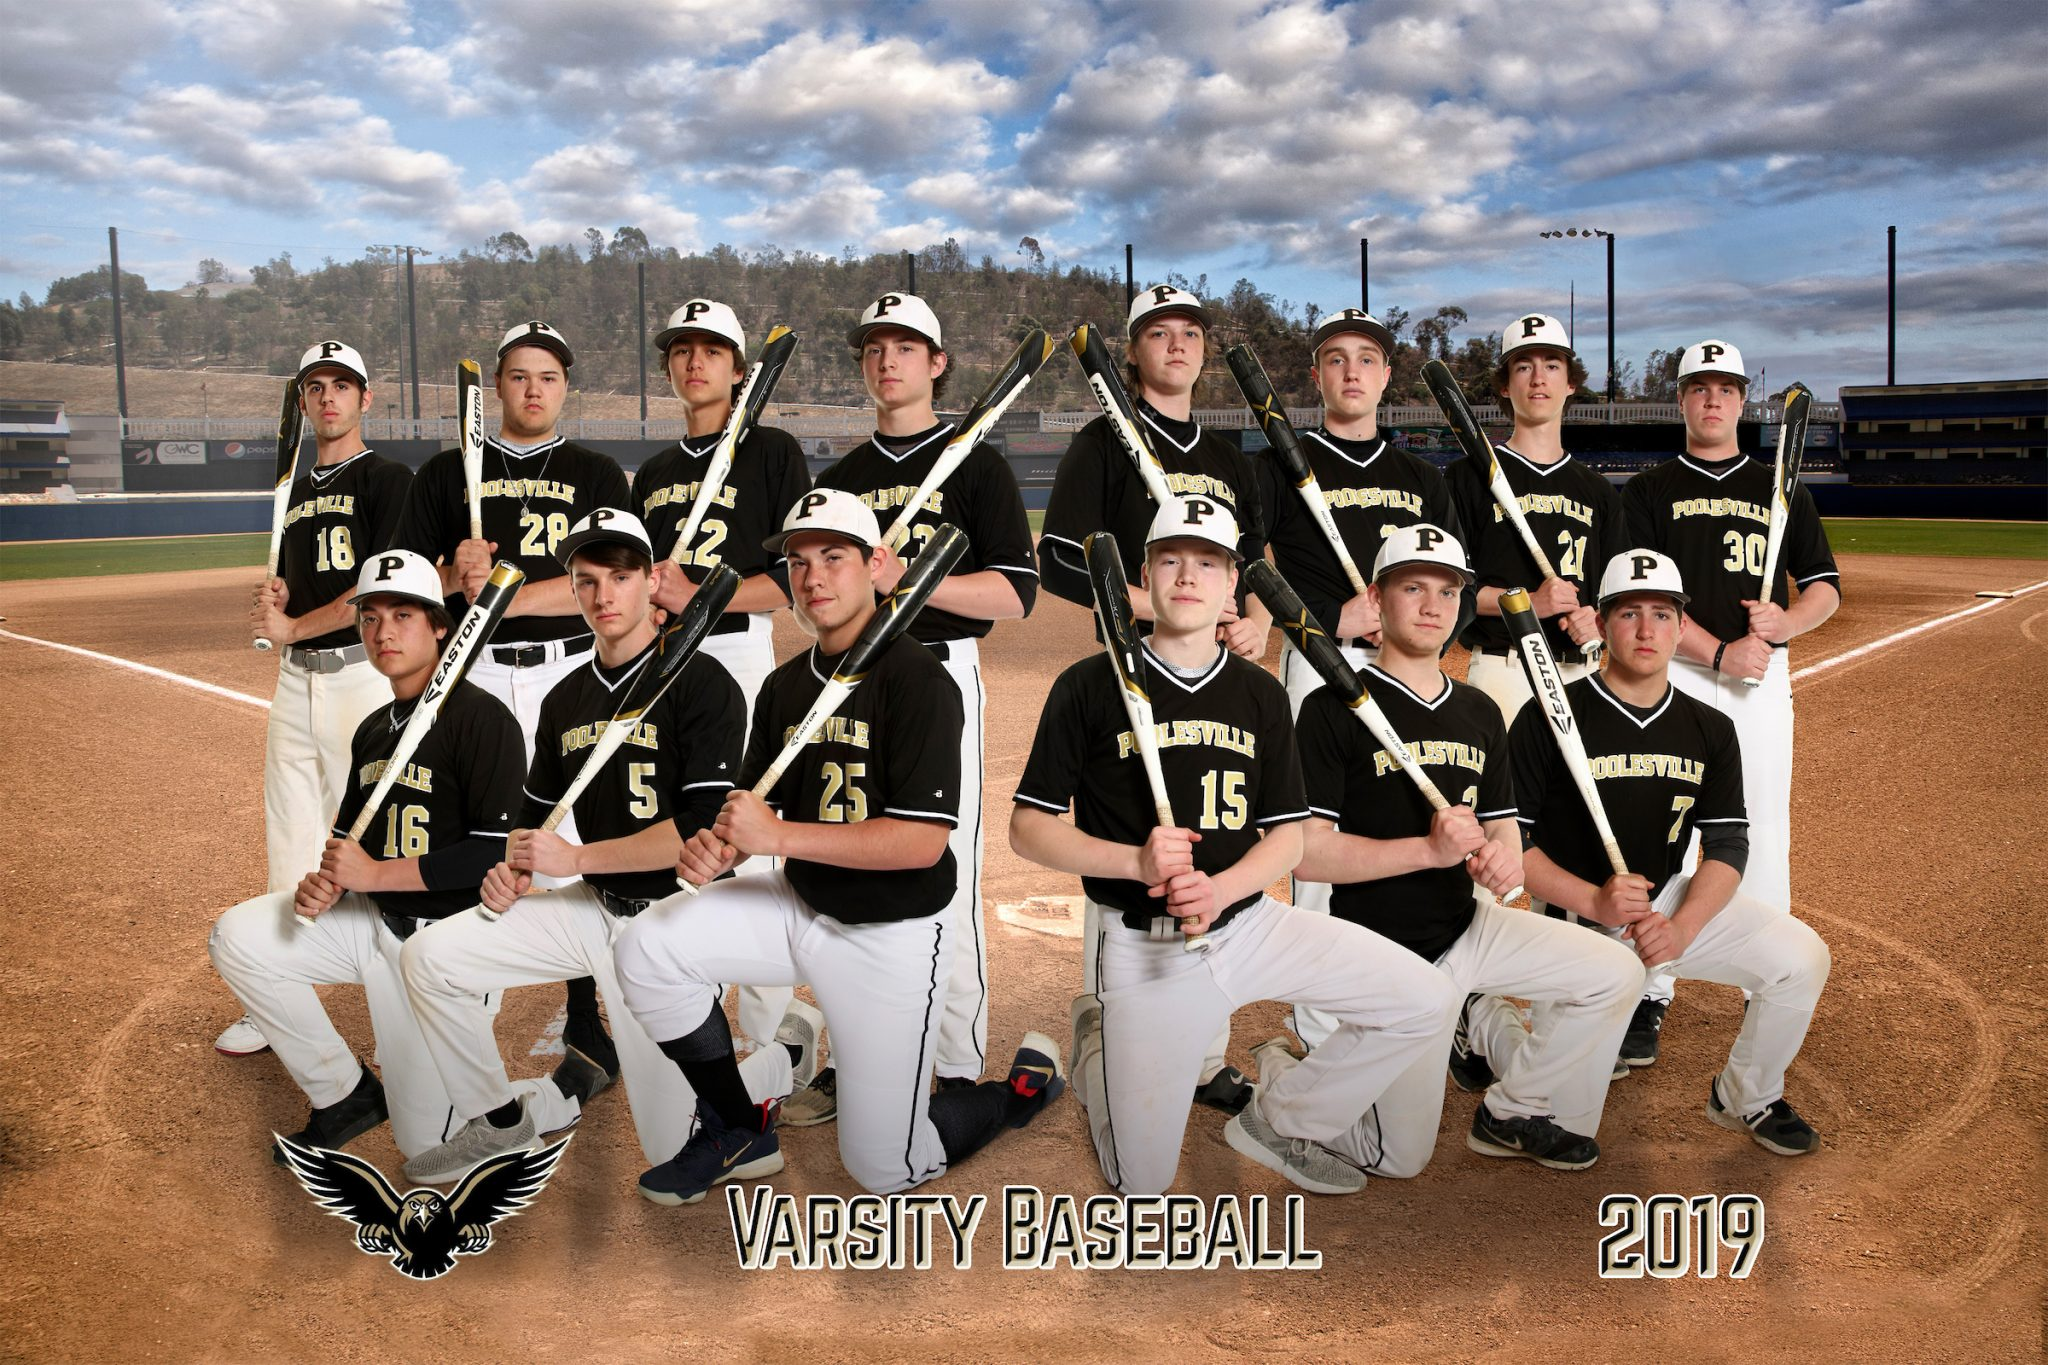 varsity baseball team picture